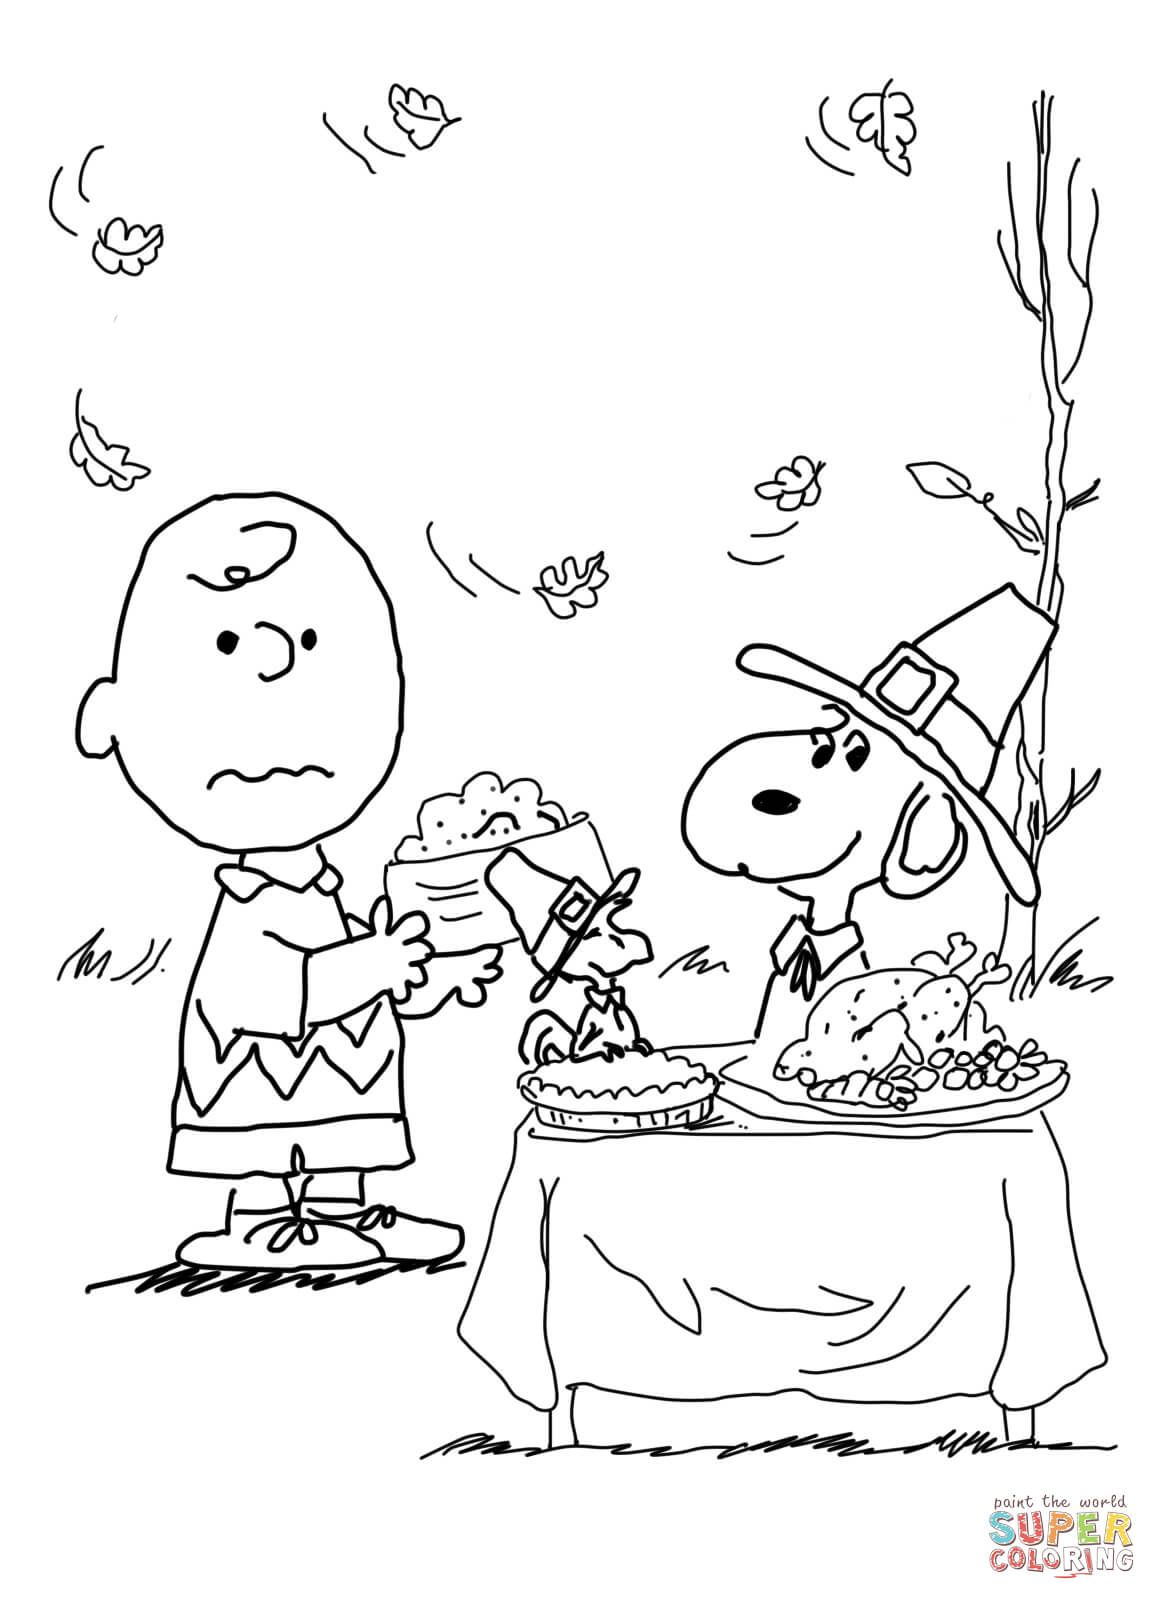 Charlie Brown Thanksgiving Coloring Page From Peanuts Category Select From 27569 Thanksgiving Color Christmas Coloring Pages Free Thanksgiving Coloring Pages